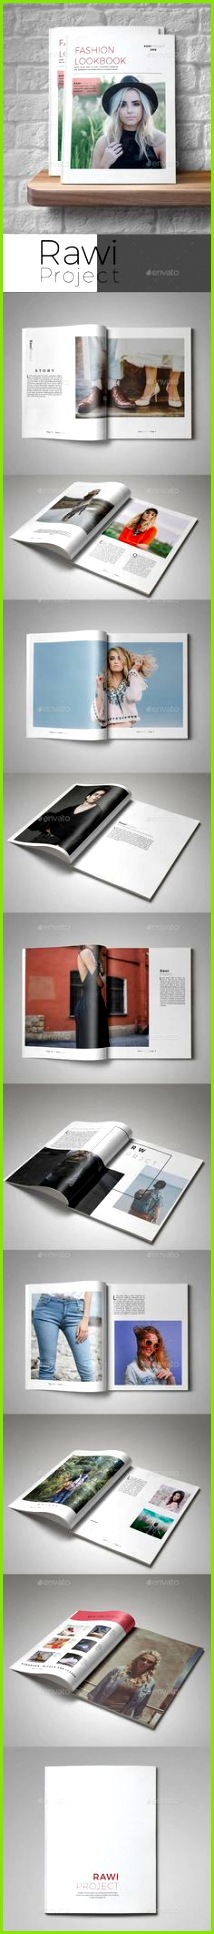 Fashion Lookbook Template InDesign INDD best Graphic Design